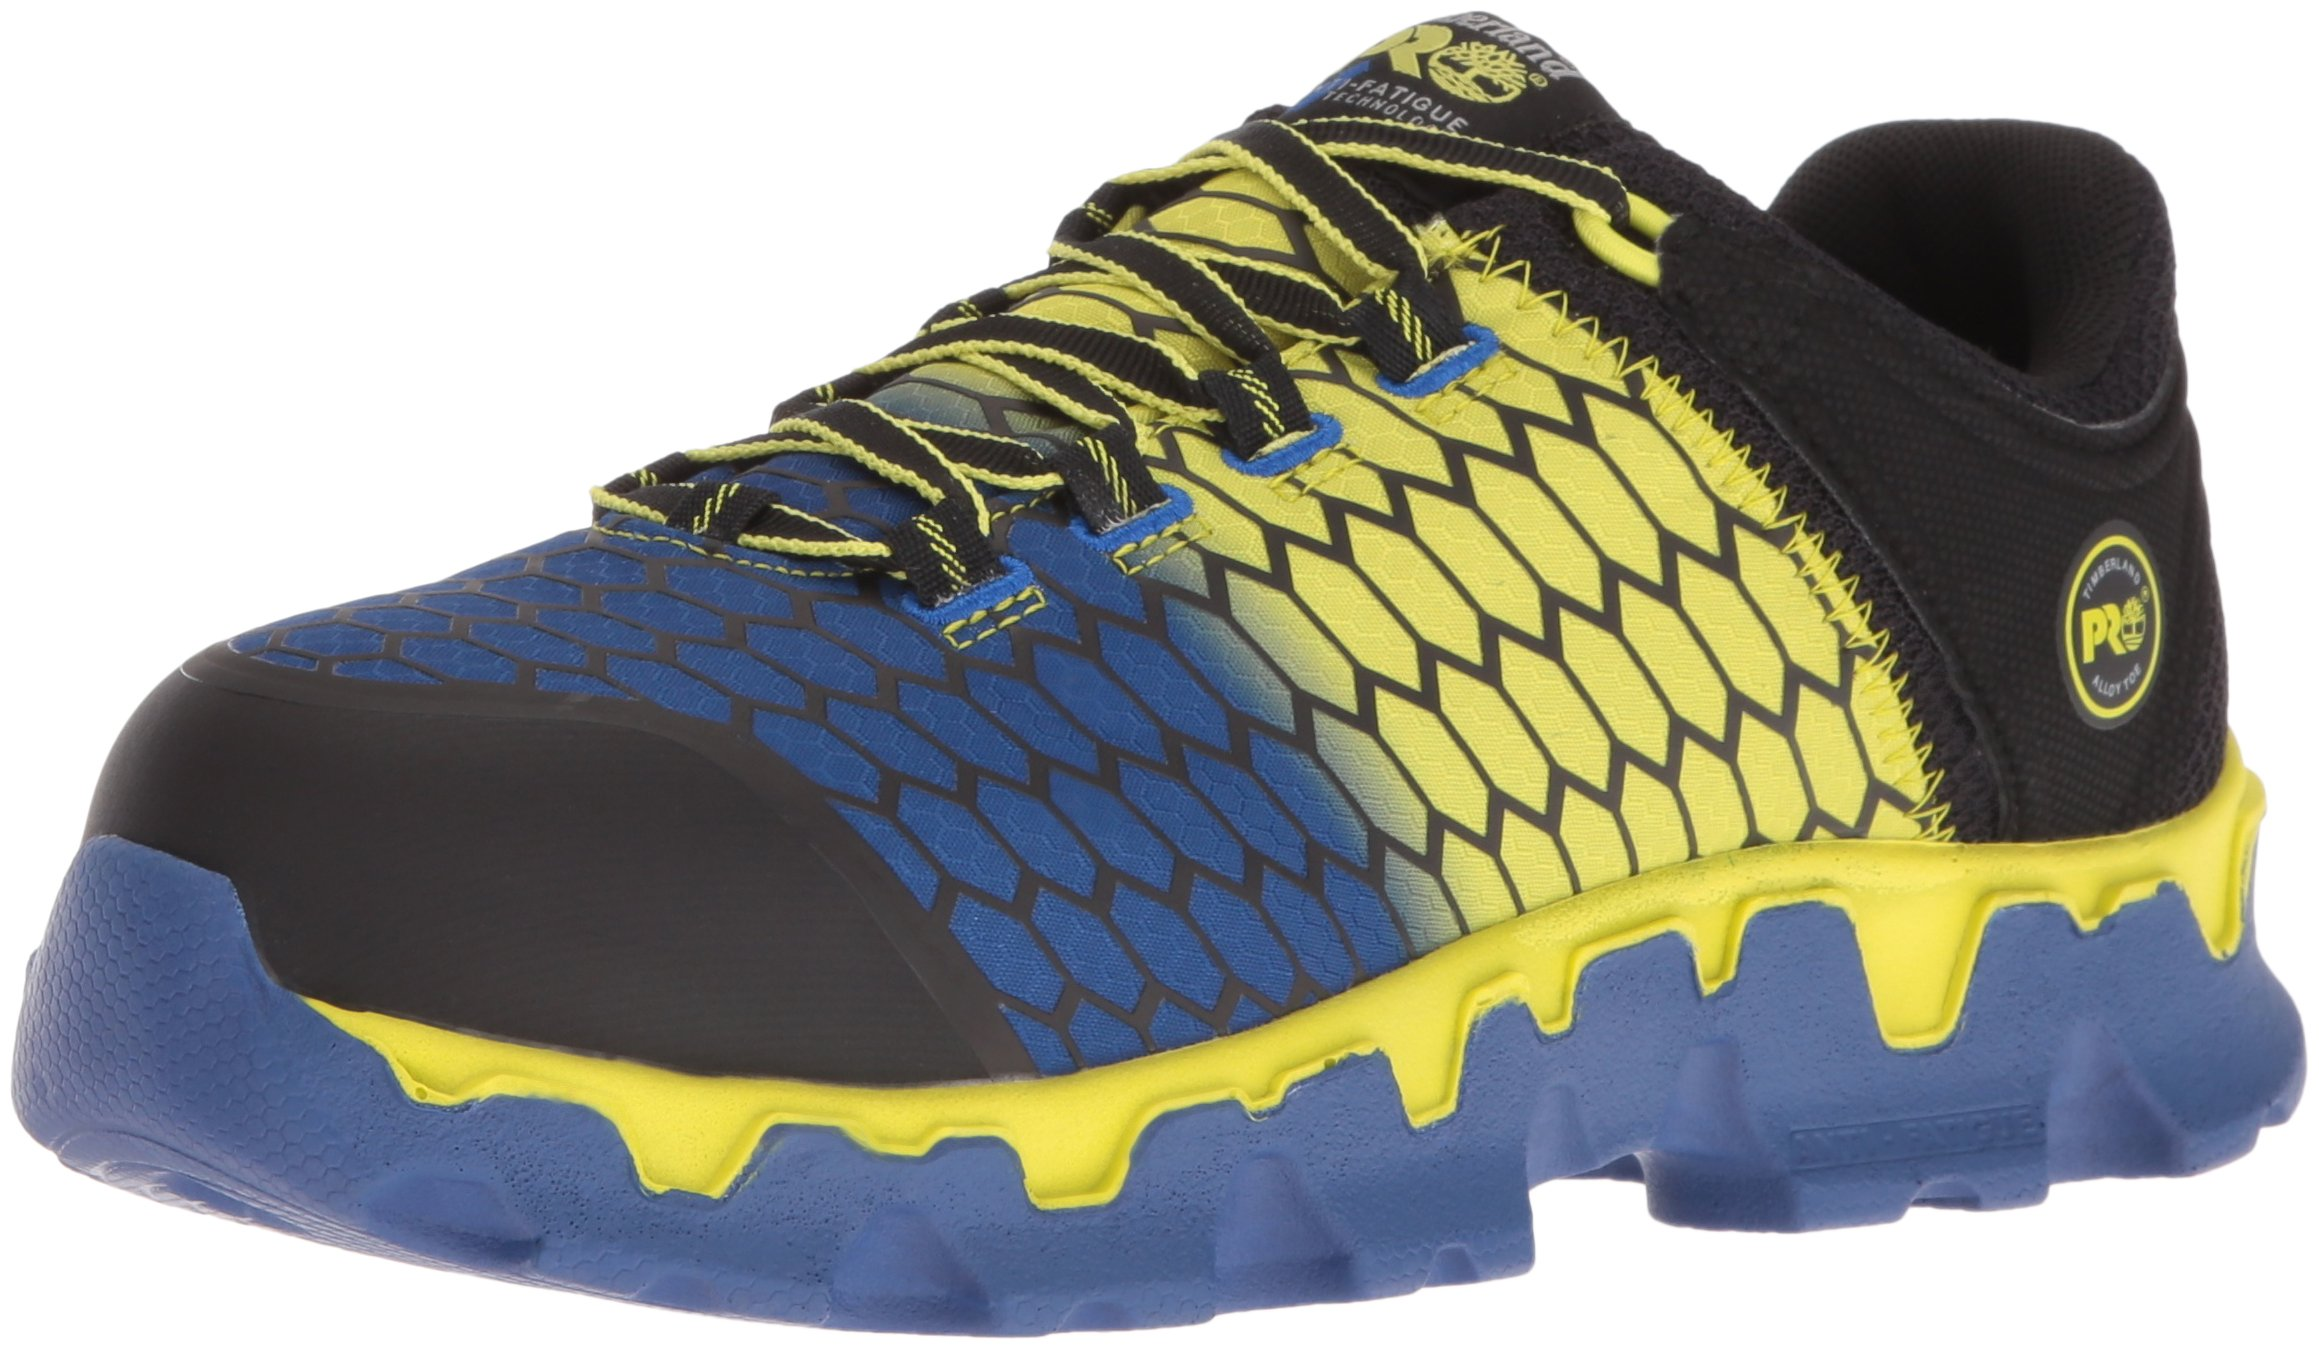 Timberland PRO Men's Powertrain Sport Alloy Toe SD+ Industrial and Construction Shoe, Black Synthetic/Yellow/Blue, 13 W US